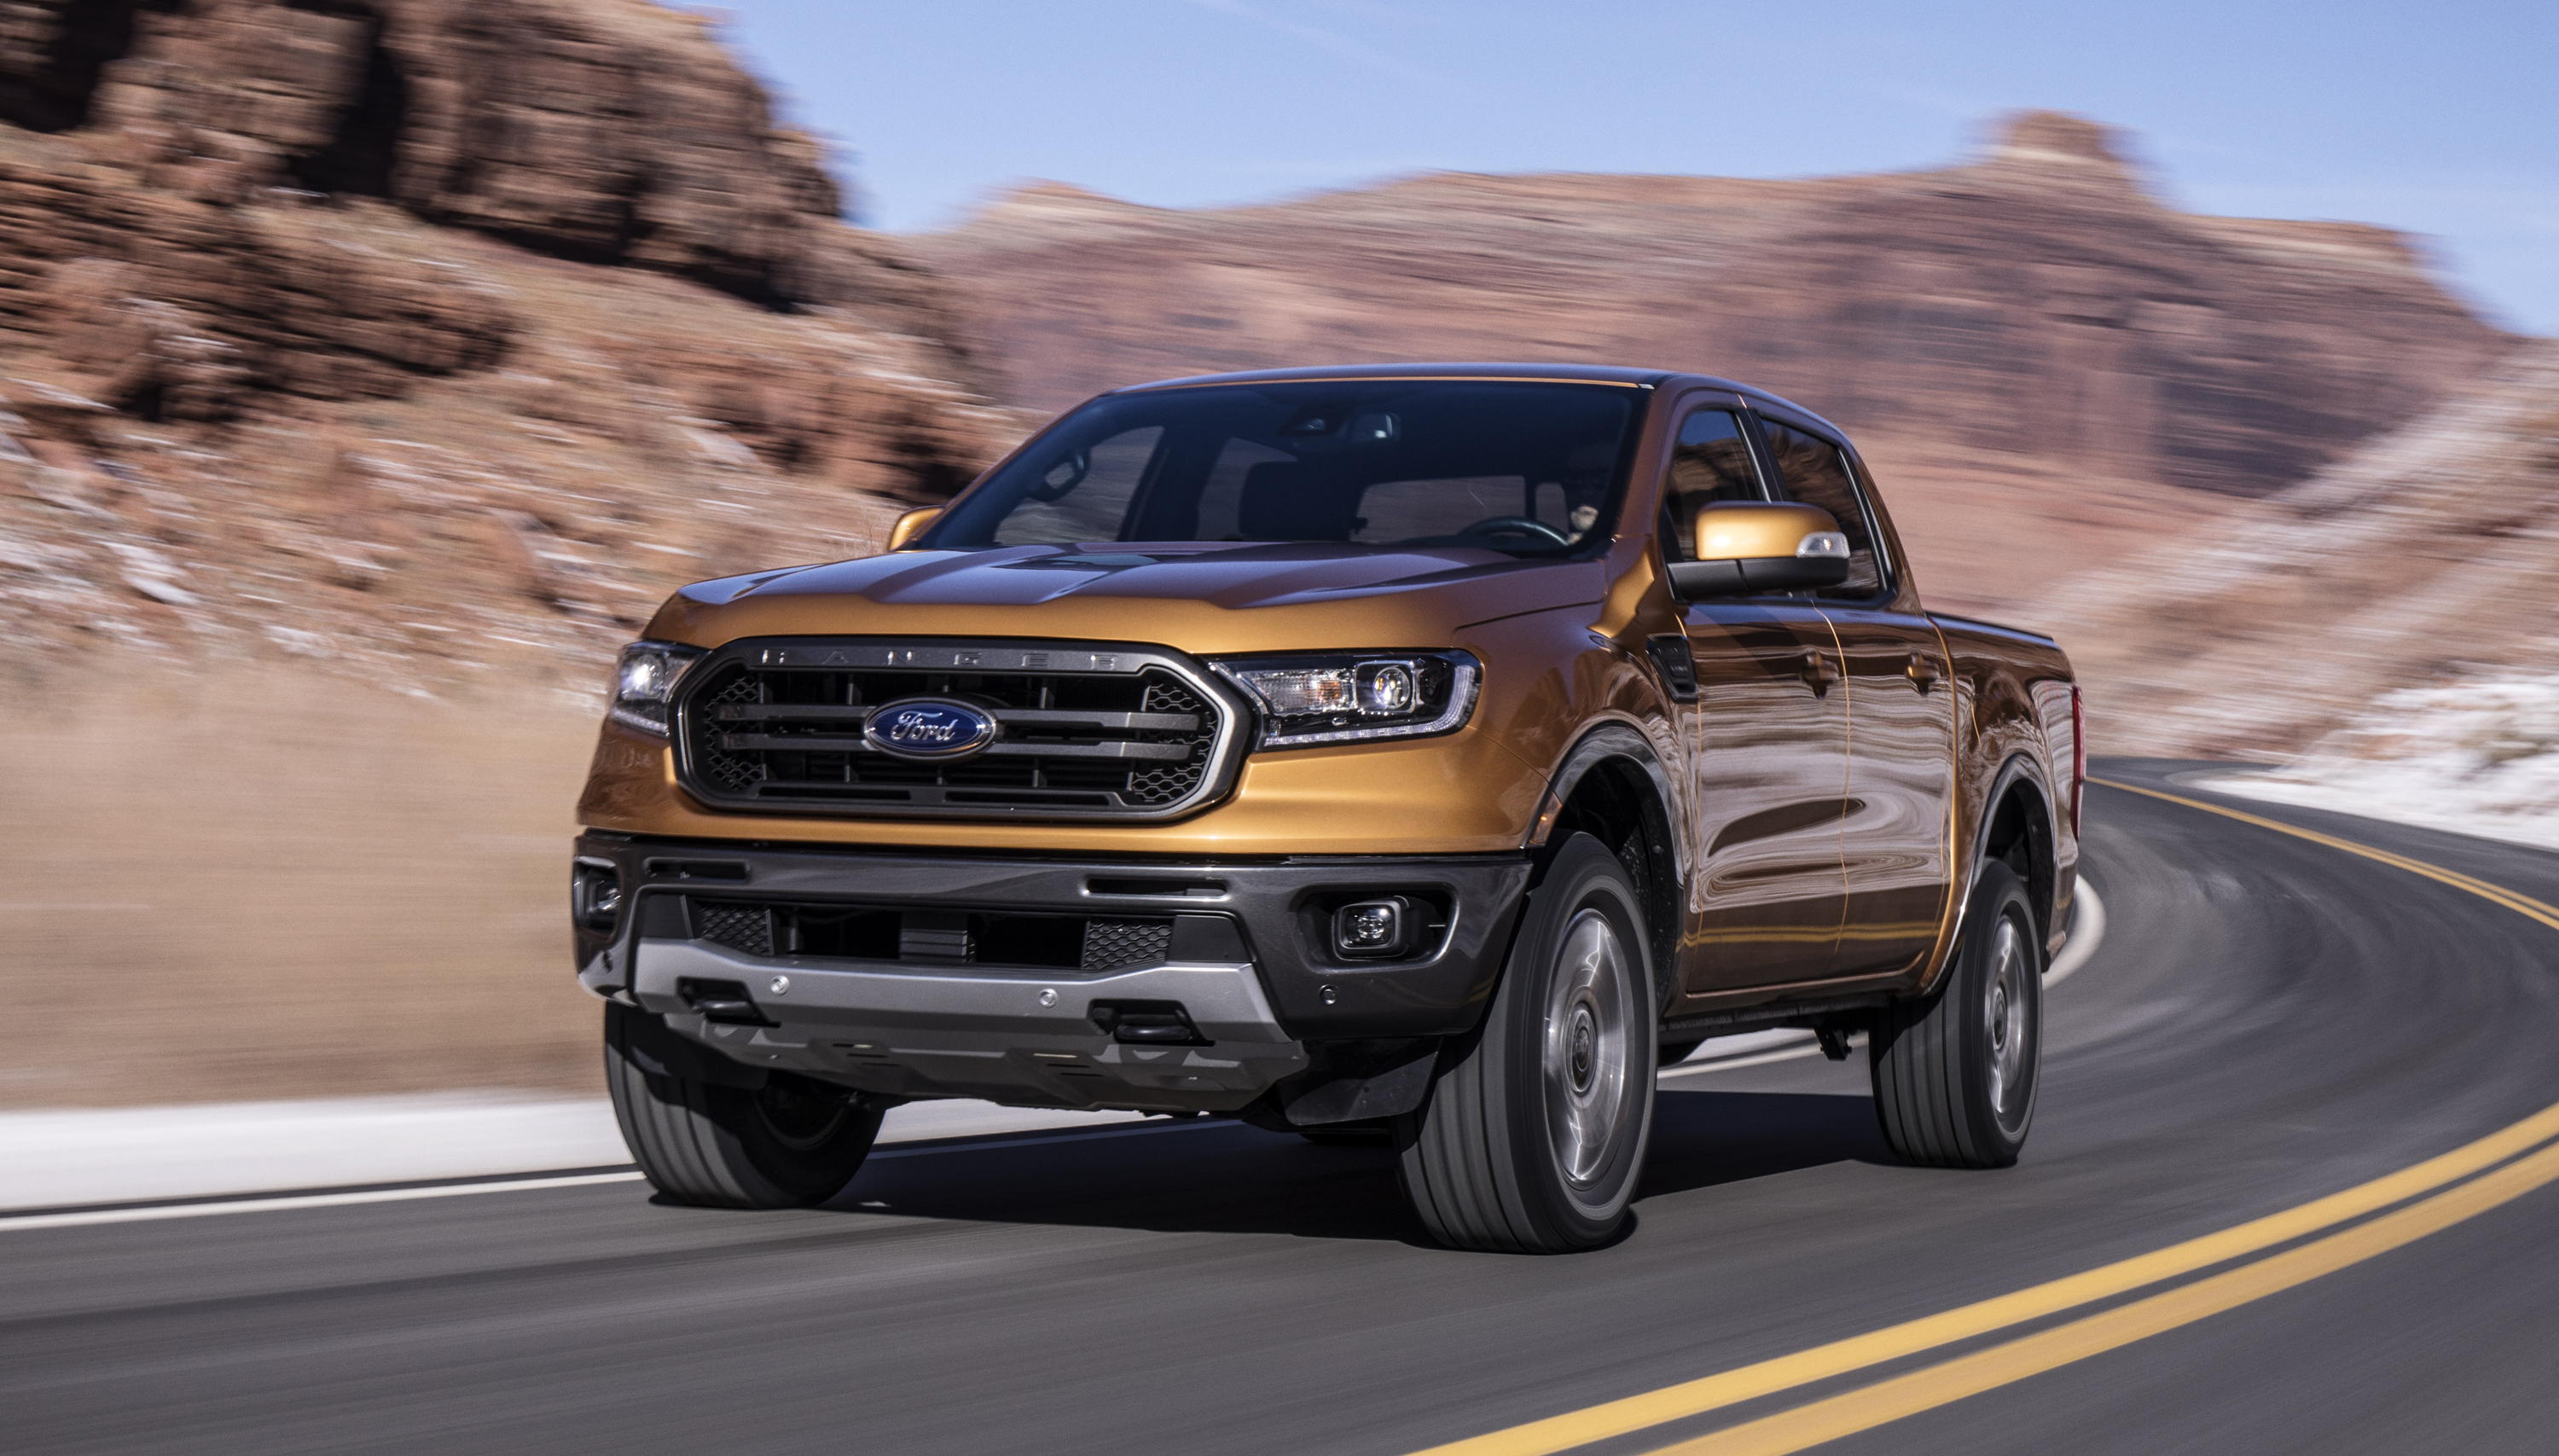 New Ford Ranger 2020 The 2020 Ford Bronco And 2019 Ford Ranger Will Be One And The Same